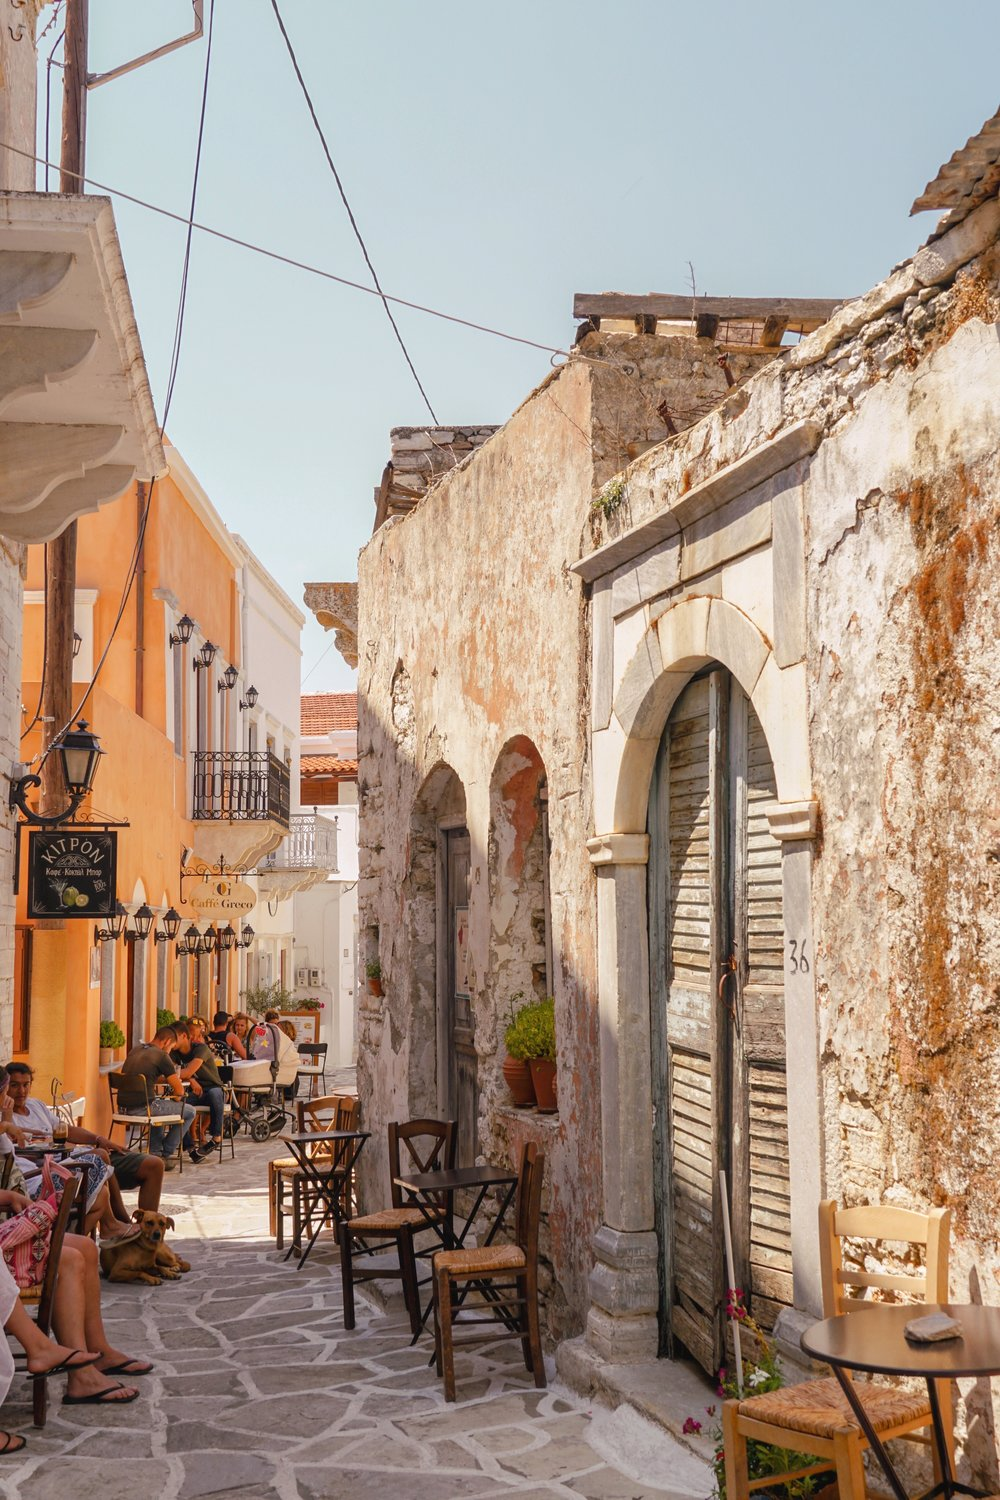 Halki has a much different feel from the traditional whitewashed architecture we're used to seeing in the Cyclades.